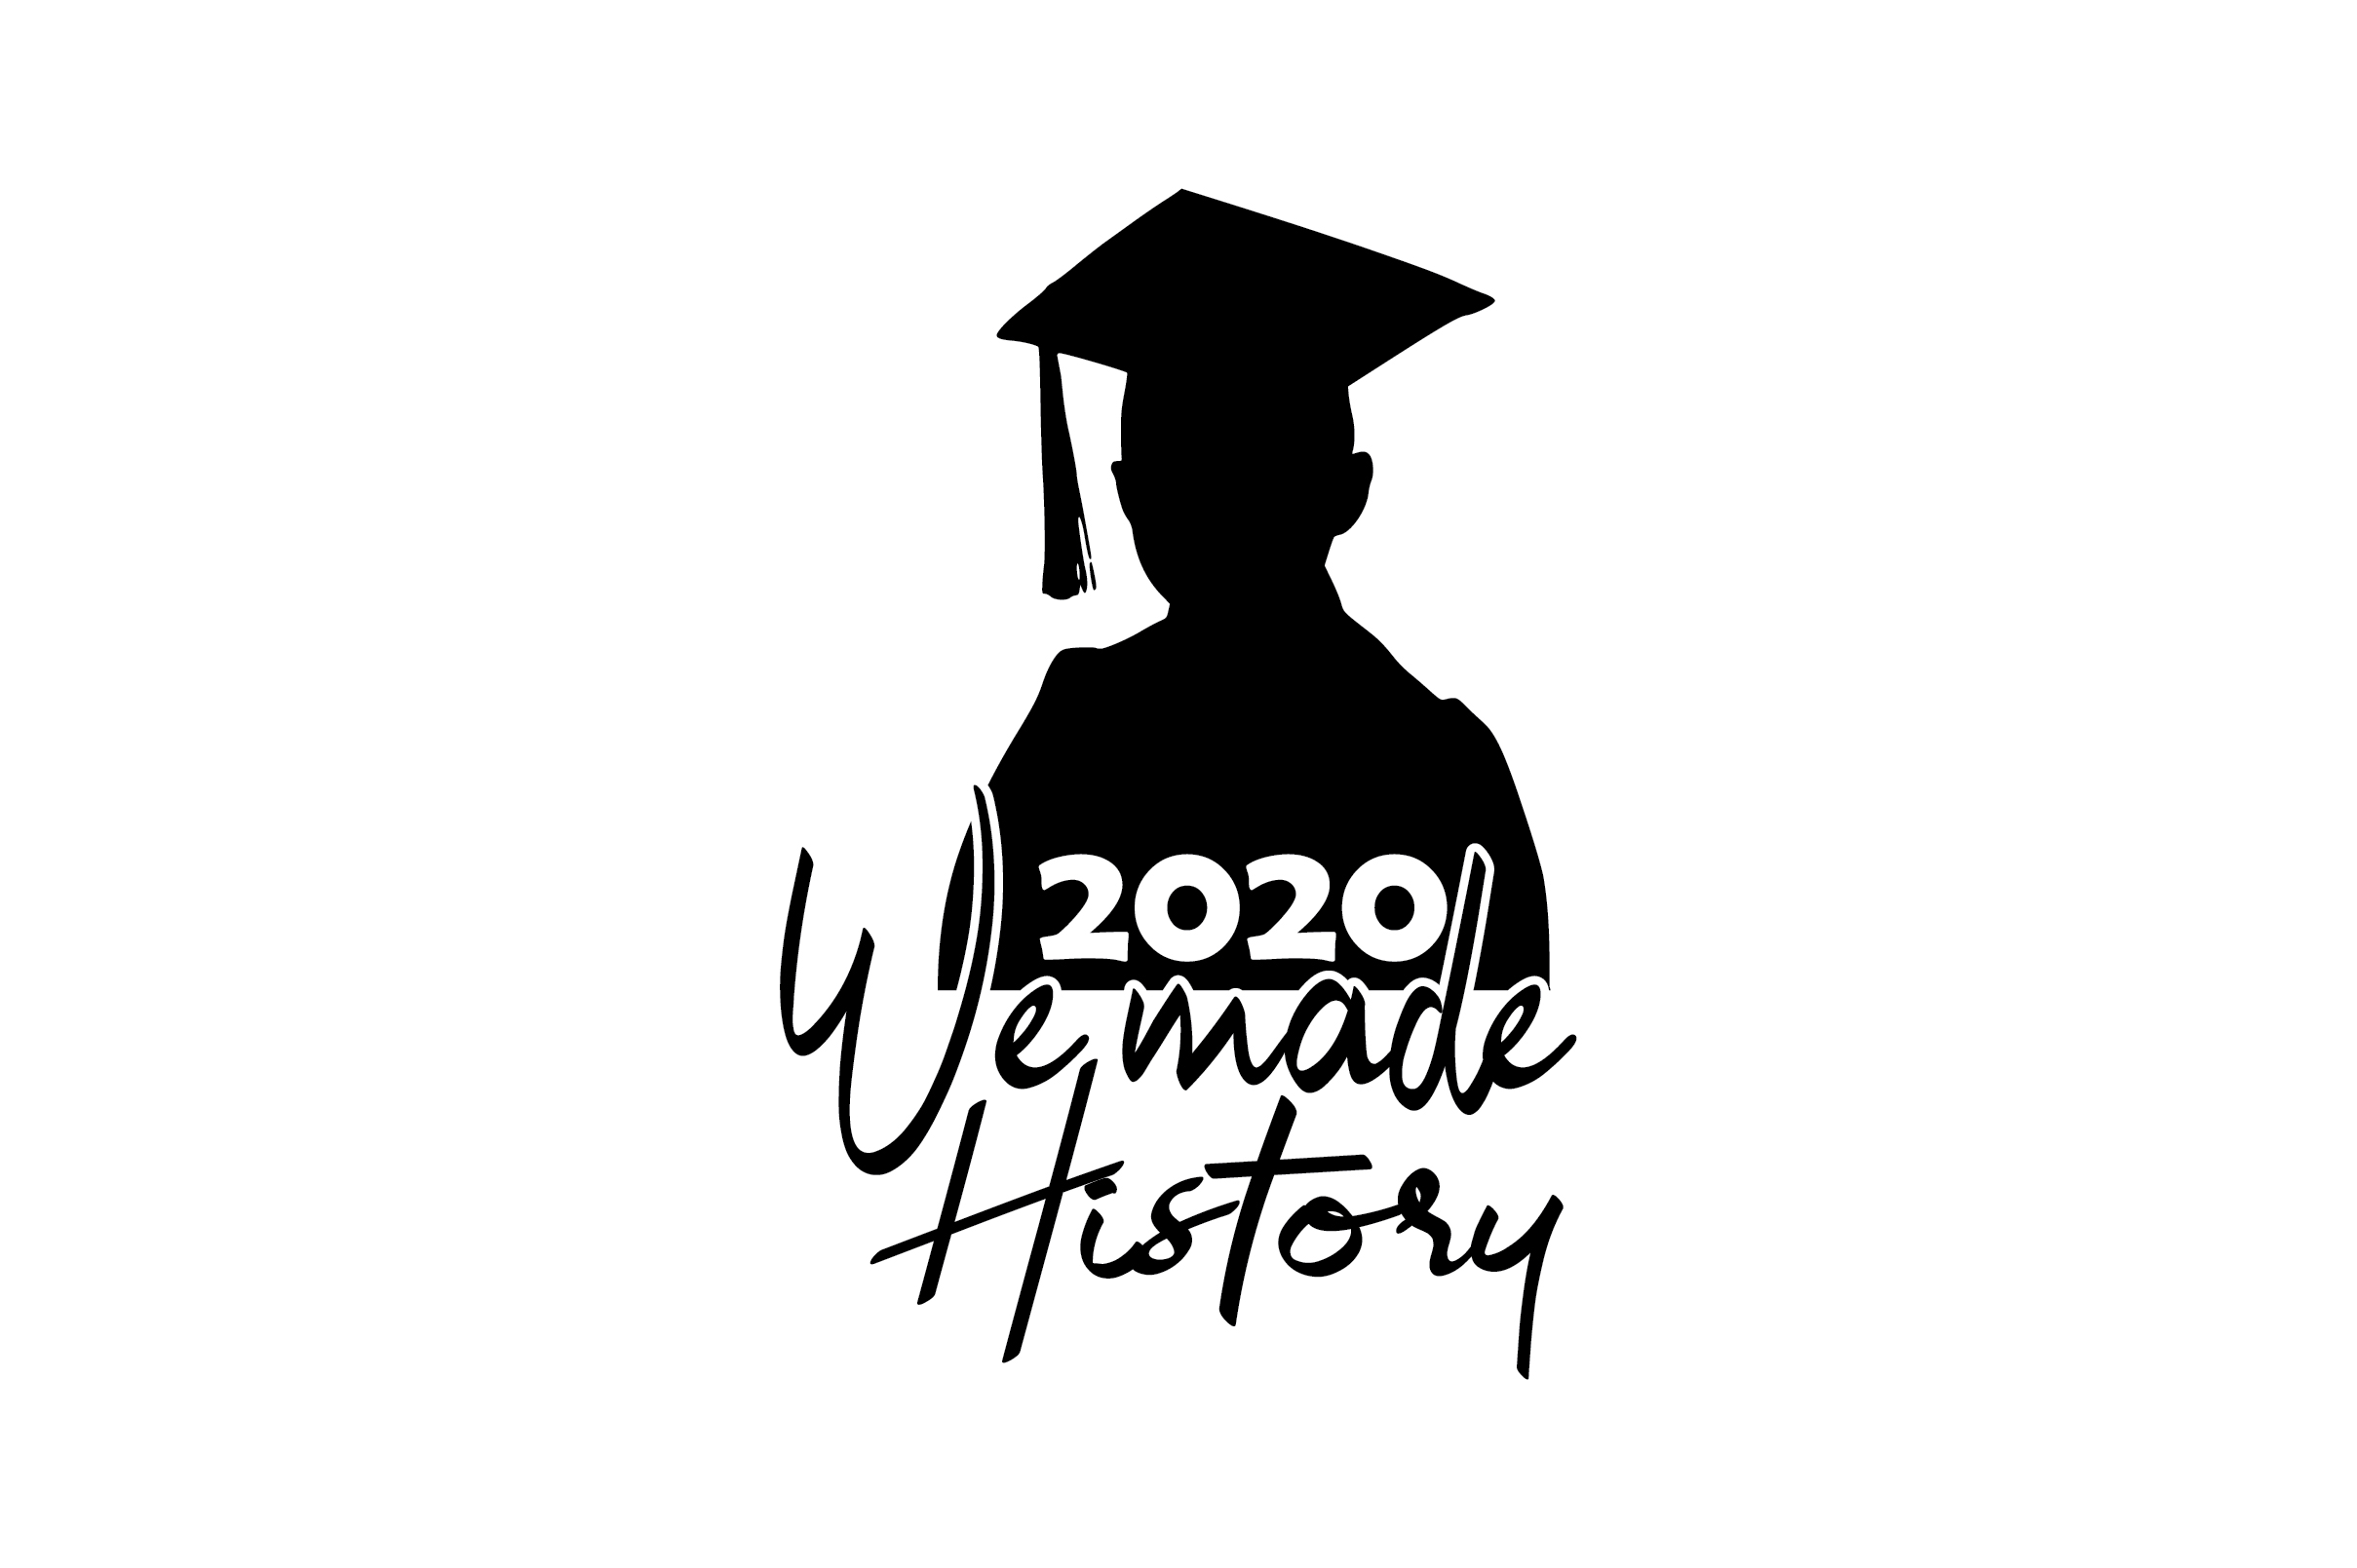 Download Free We Made History 2020 Graphic By Fauzidea Creative Fabrica for Cricut Explore, Silhouette and other cutting machines.